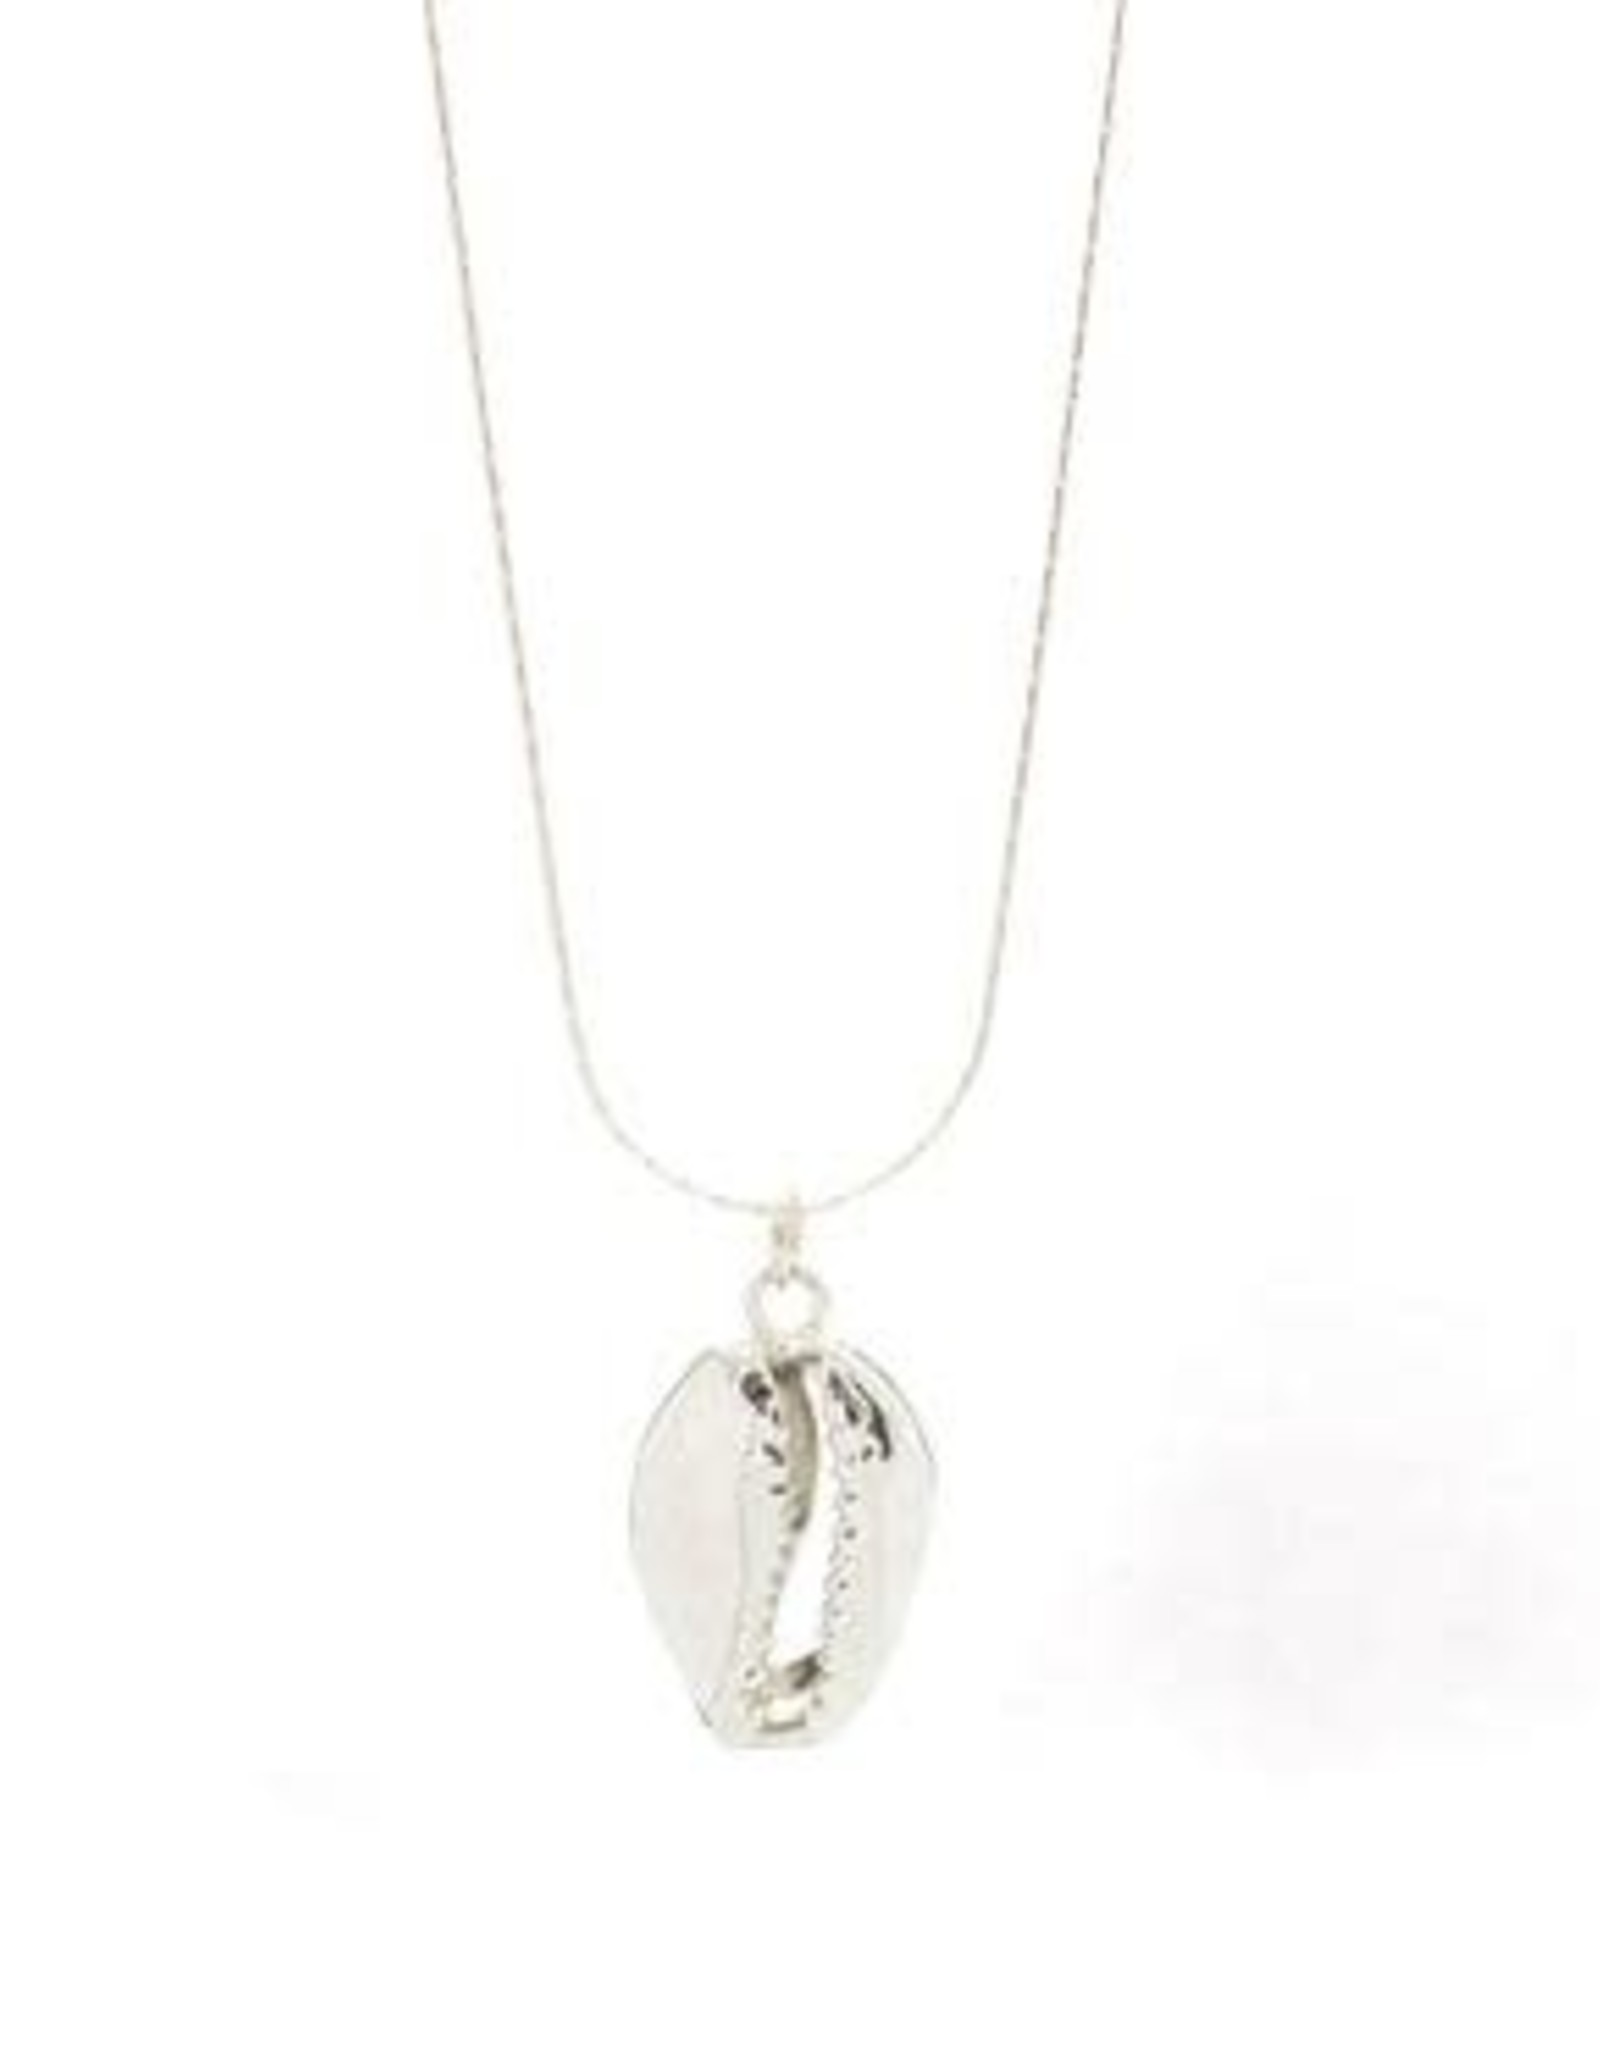 Salty Cali Puka - Salty Shells Necklace Sterling